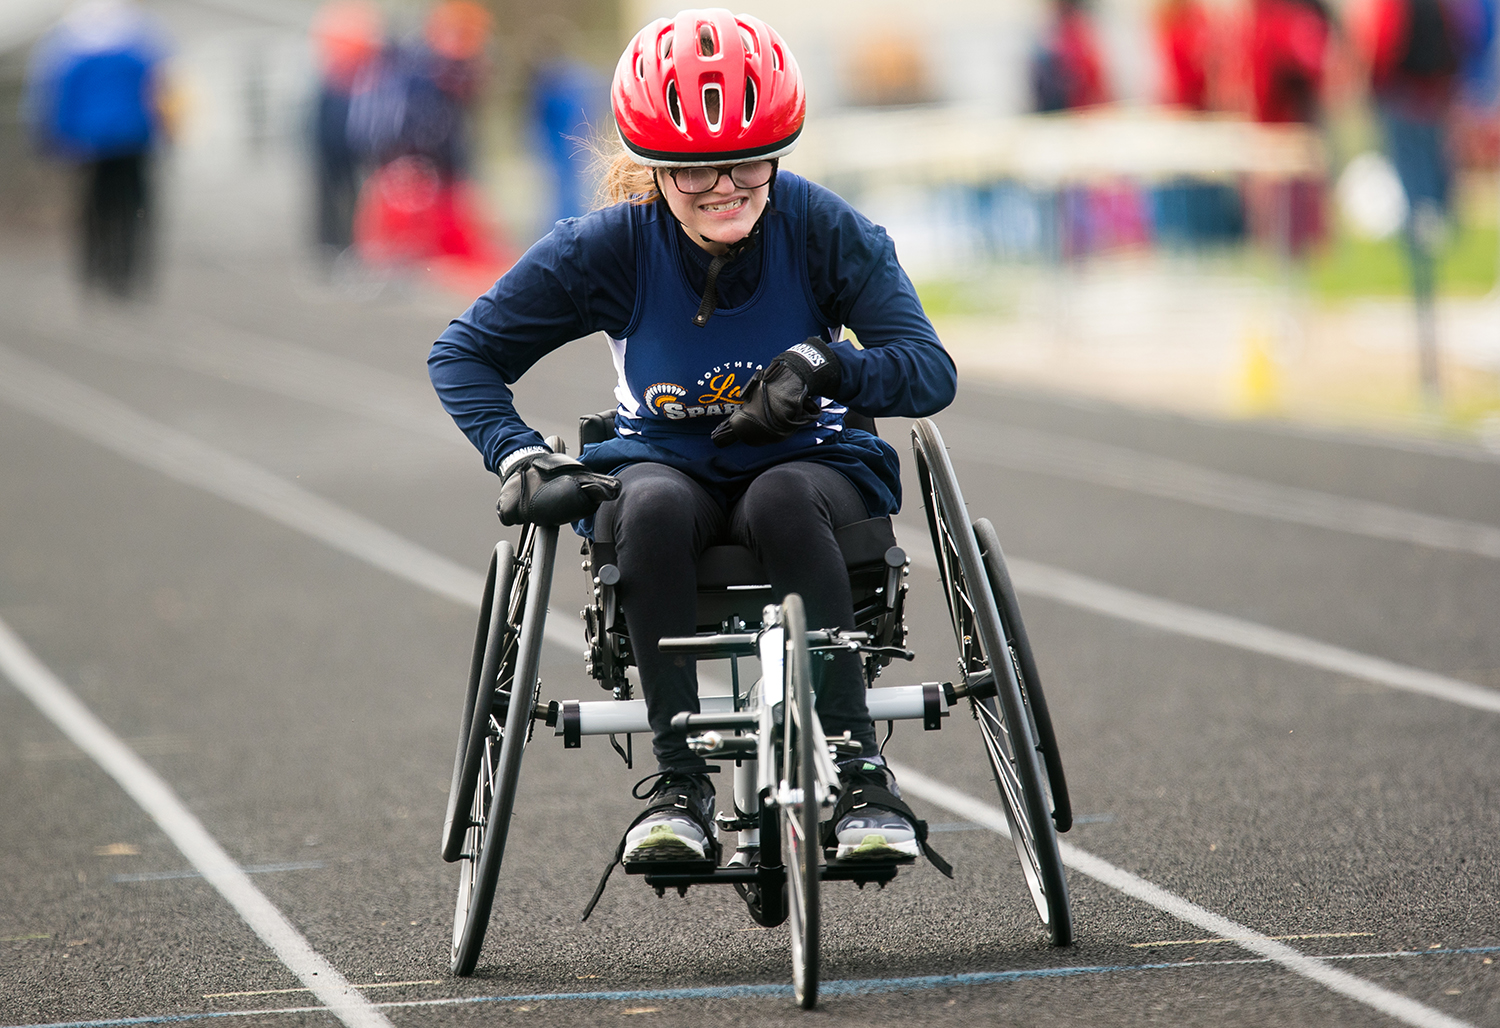 Southeast's Katelyn Koskey competes in the wheelchair 100 meter dash, the first ever at Southeast High School, during the 2019 Thomas McBride Invitational Saturday, April 13, 2019.Ted Schurter/The State Journal-Register